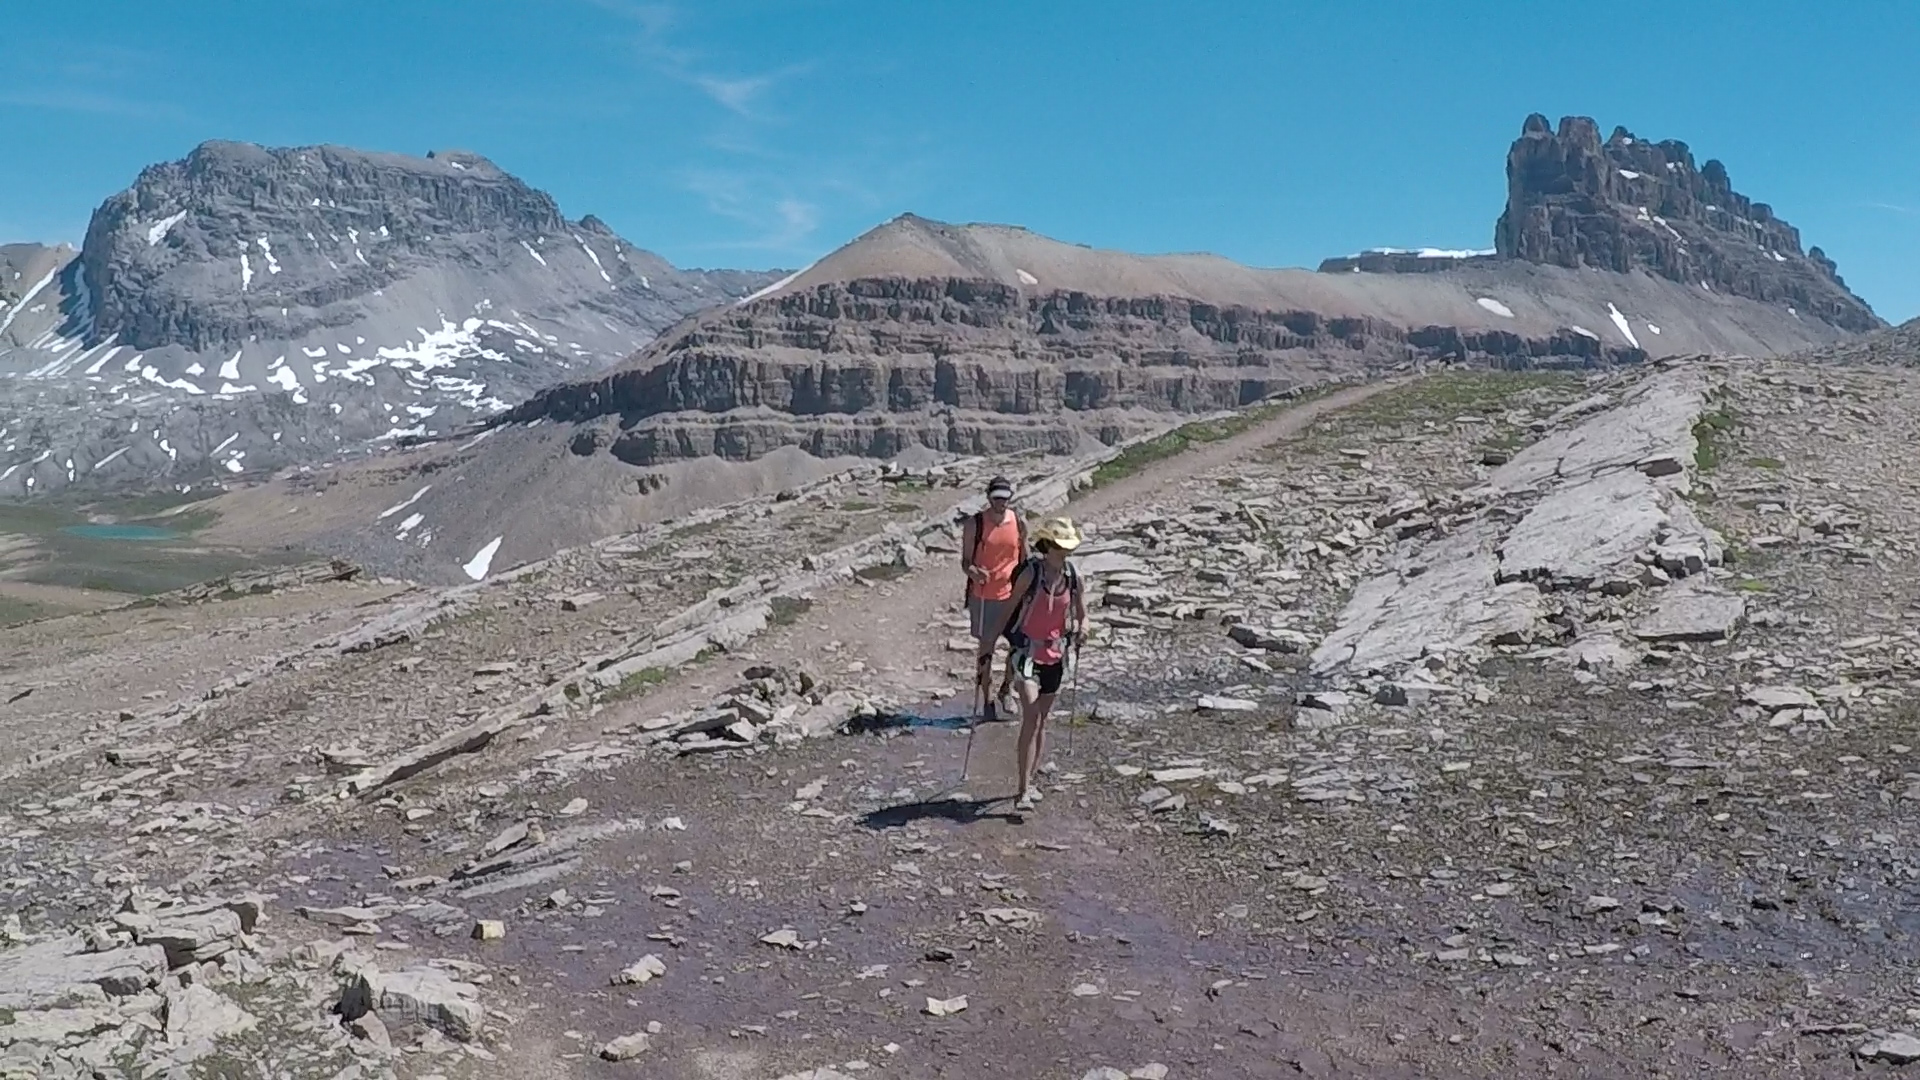 Copy of Guided walking tour of the Rockies near Banff.